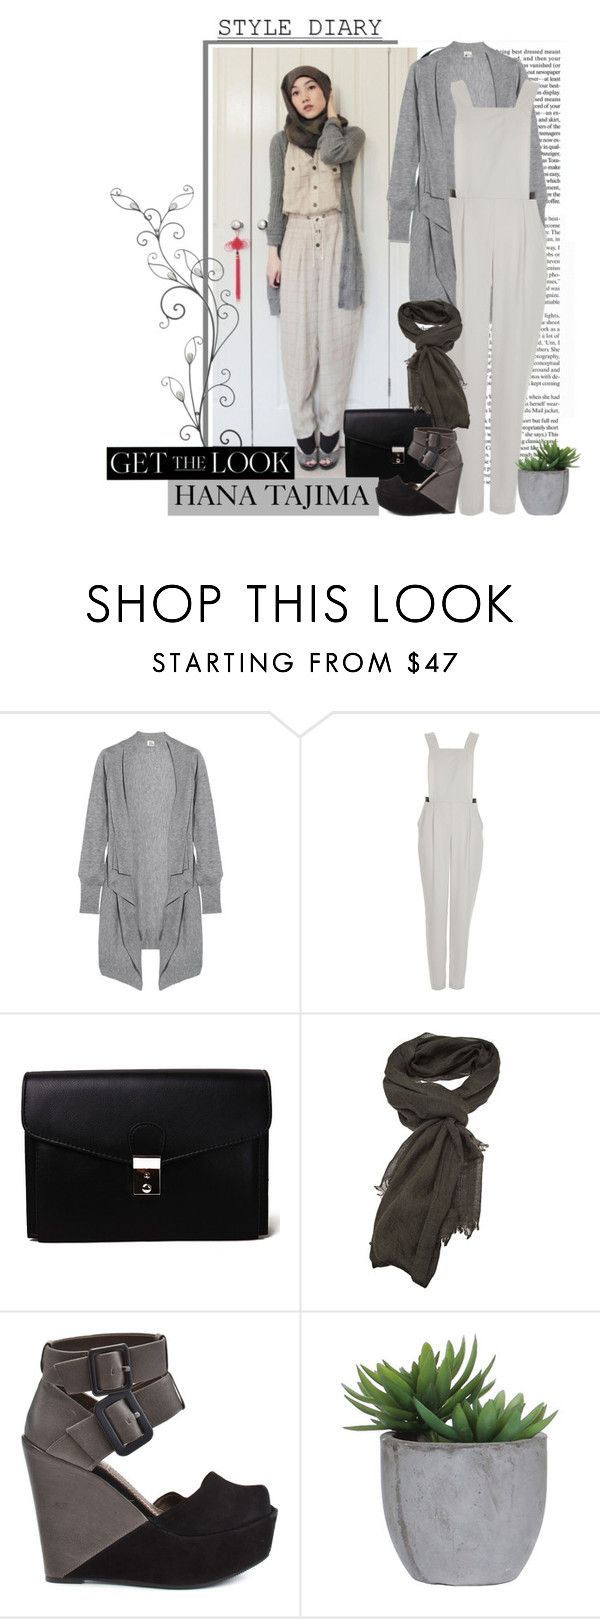 """Get The Look : Hana Tajima"" by weeyz ❤ liked on Polyvore featuring Iris & Ink, Topshop, Akira, Faliero Sarti, Bacio 61 and Lux-Art Silks"